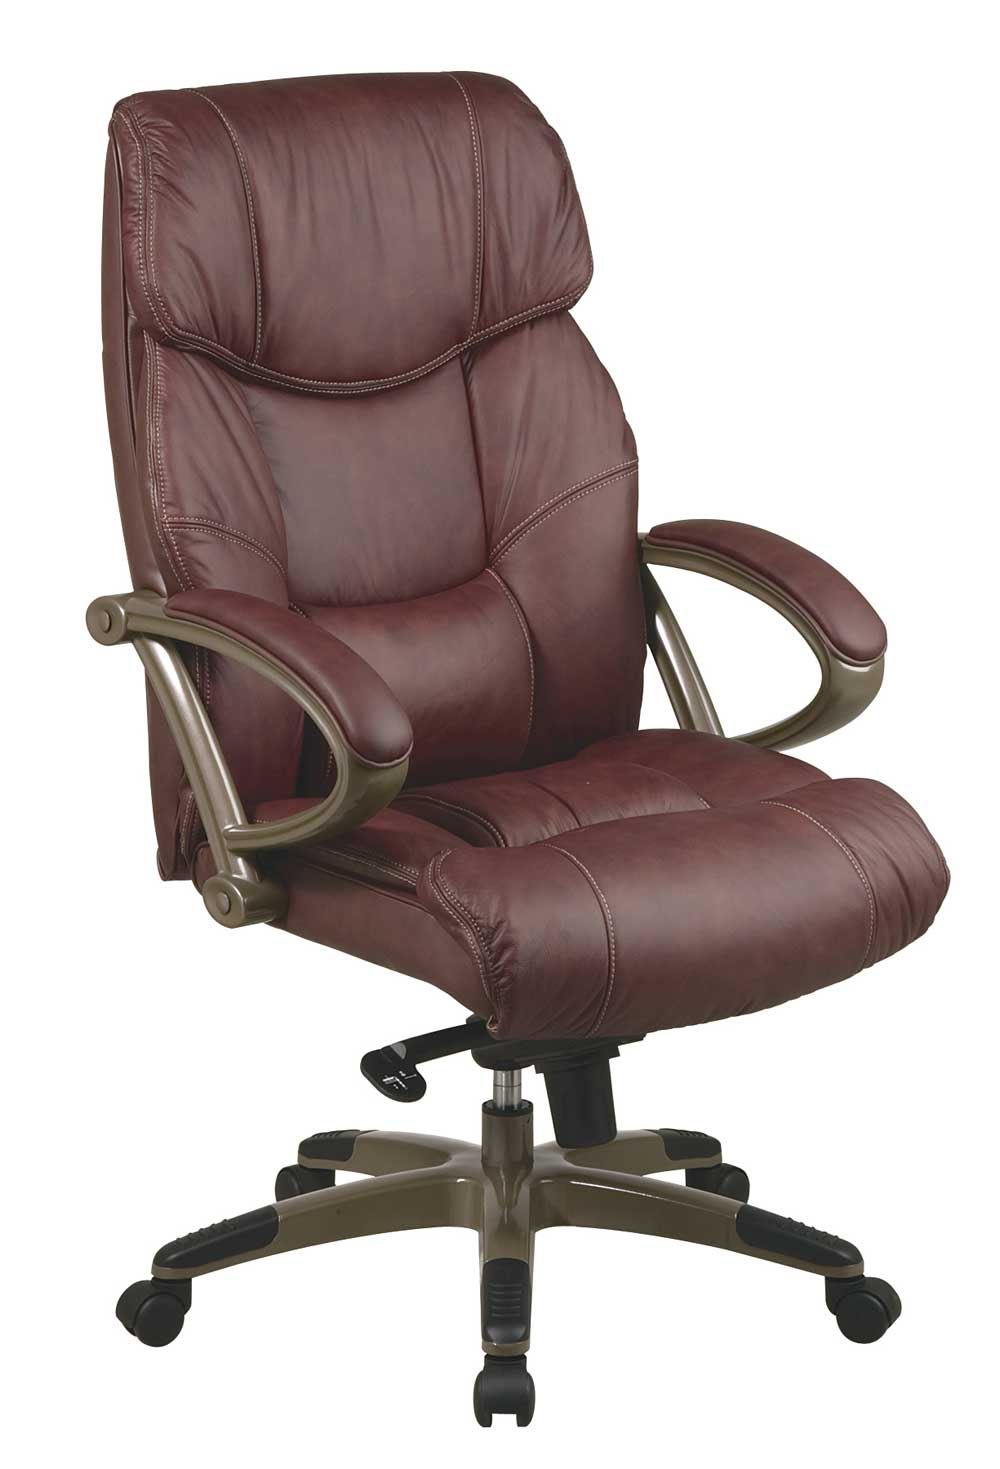 with flash back comfortable multifunction furniture high lumbar support com black dp amazon leather executive chair knob swivel desk arms